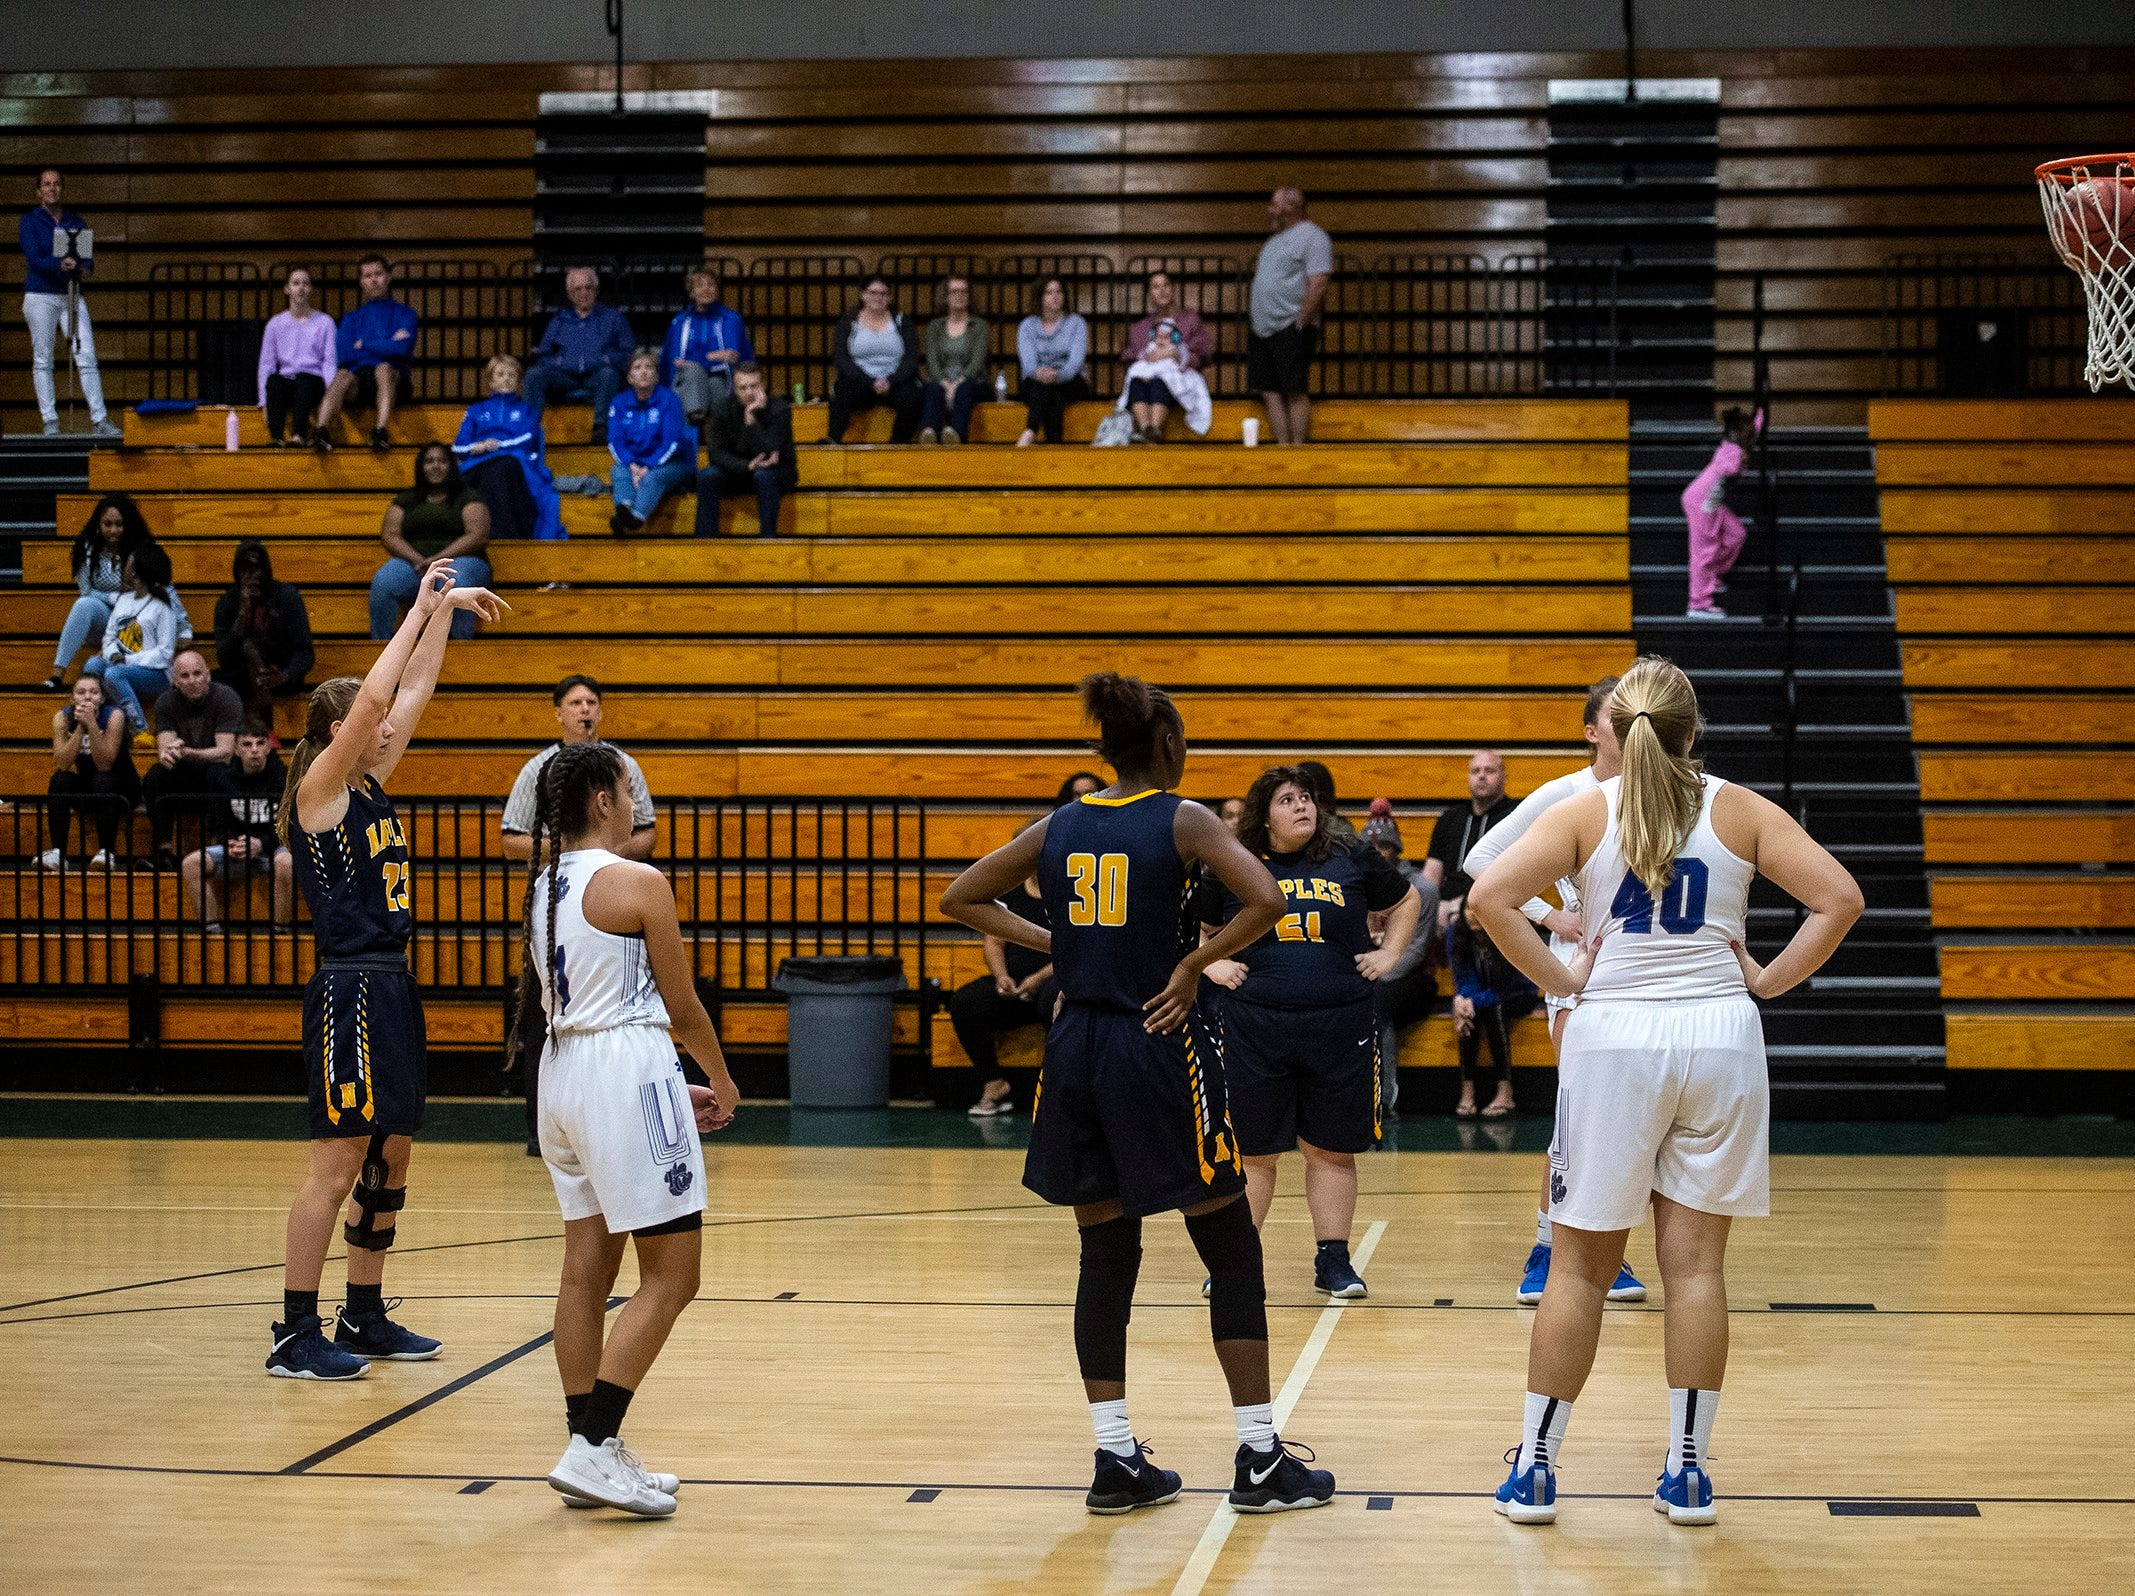 Naples High School's Amelia Hanlon takes a free throw during the Class 7A-District 12 Championship against Barron Collier High School in Naples, Fla., on Friday, Feb. 8, 2019.